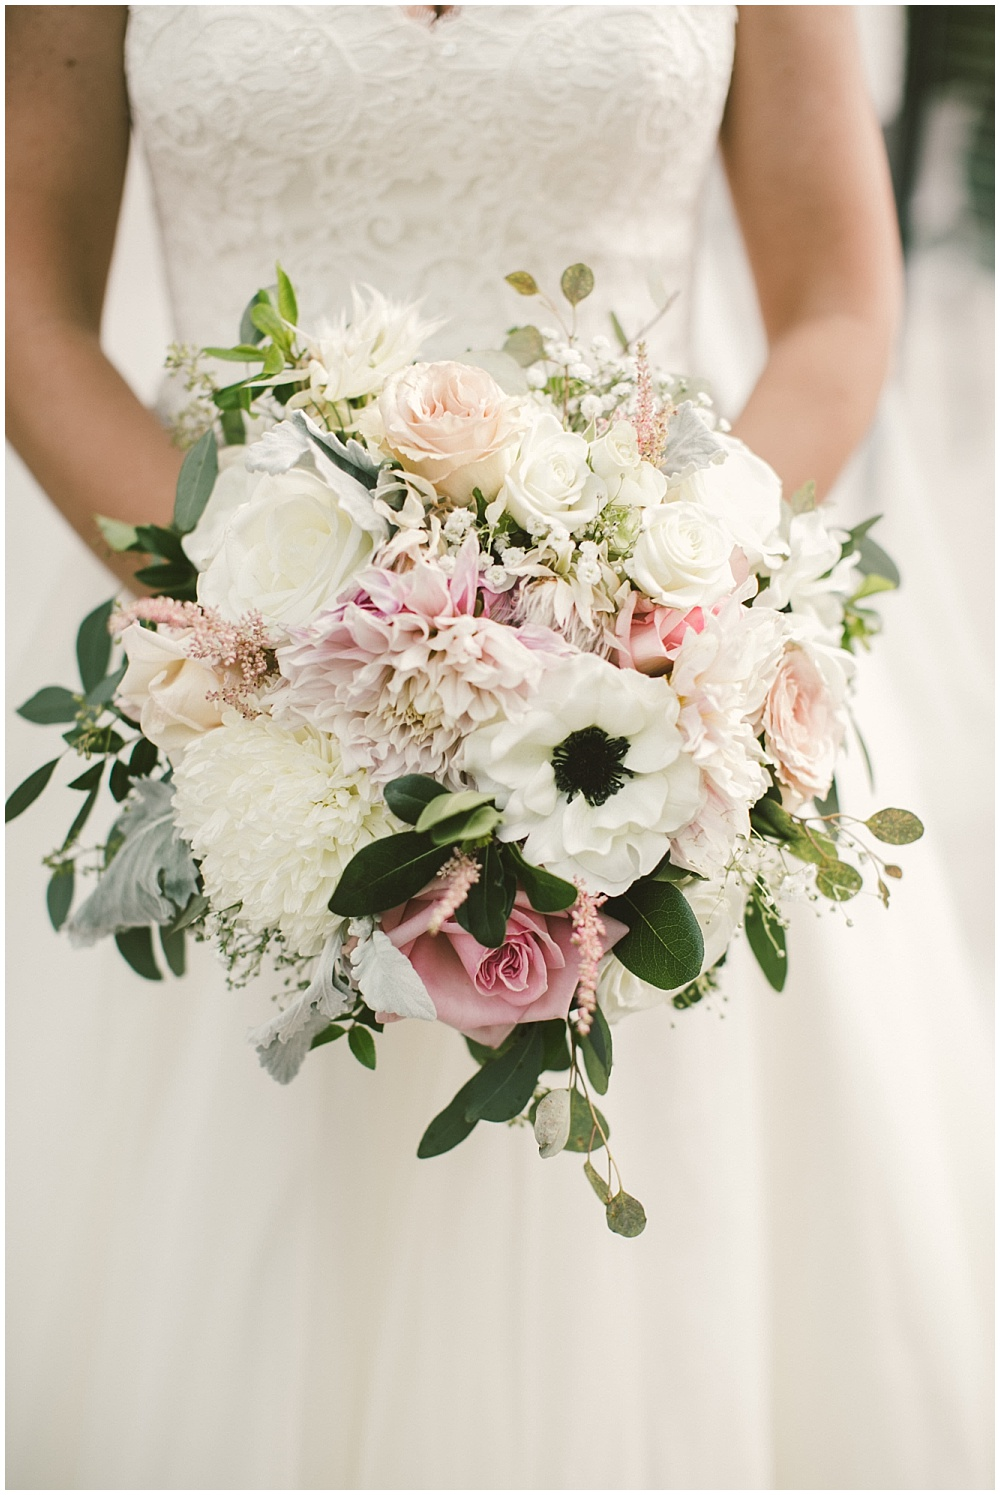 Blush, white and green bridal bouquet | Indianapolis Central Library Wedding by Jennifer Van Elk Photography & Jessica Dum Wedding Coordination